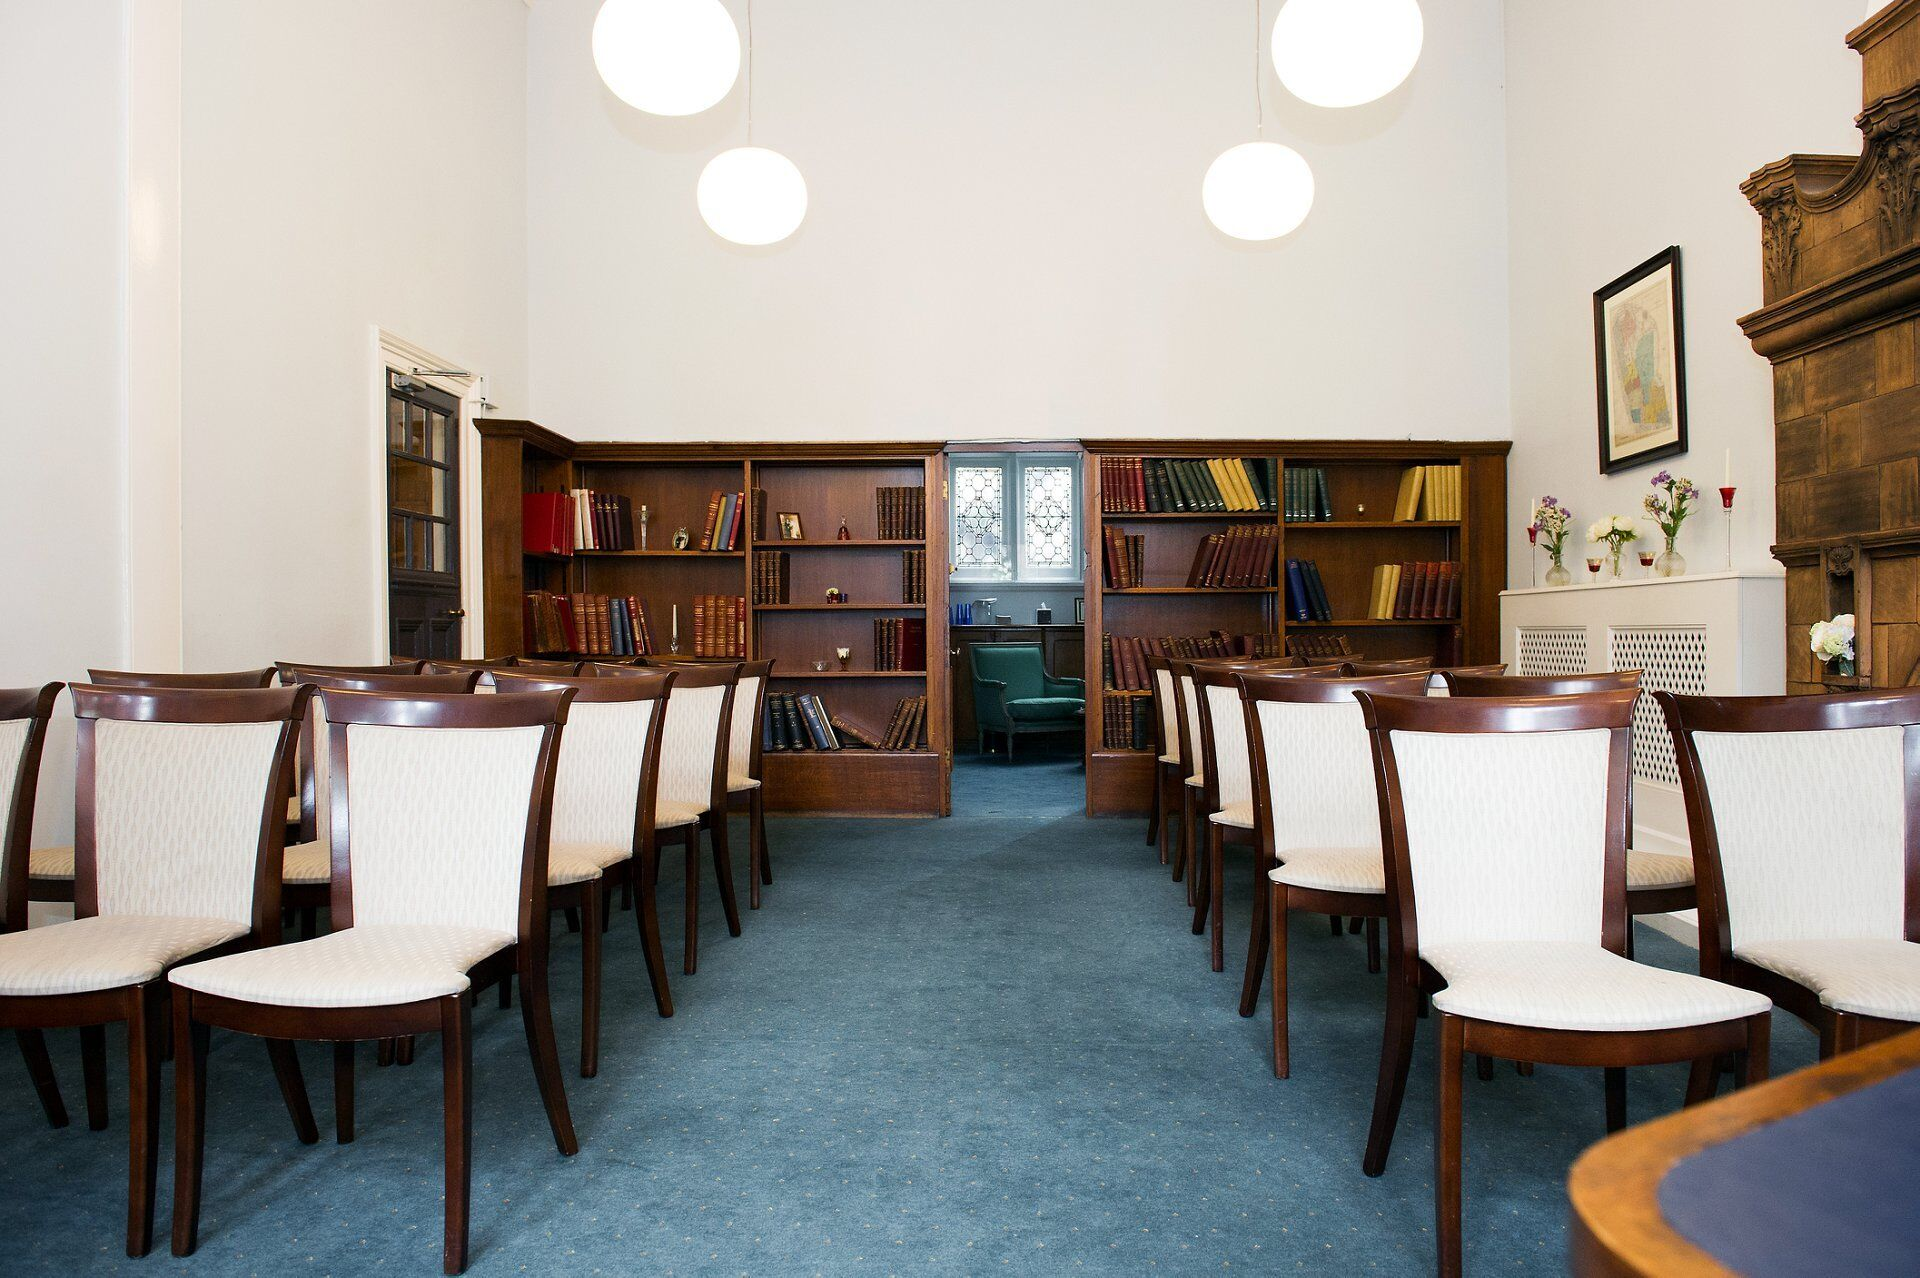 interior marylebone room mayfair library the temporary home of westminster register office